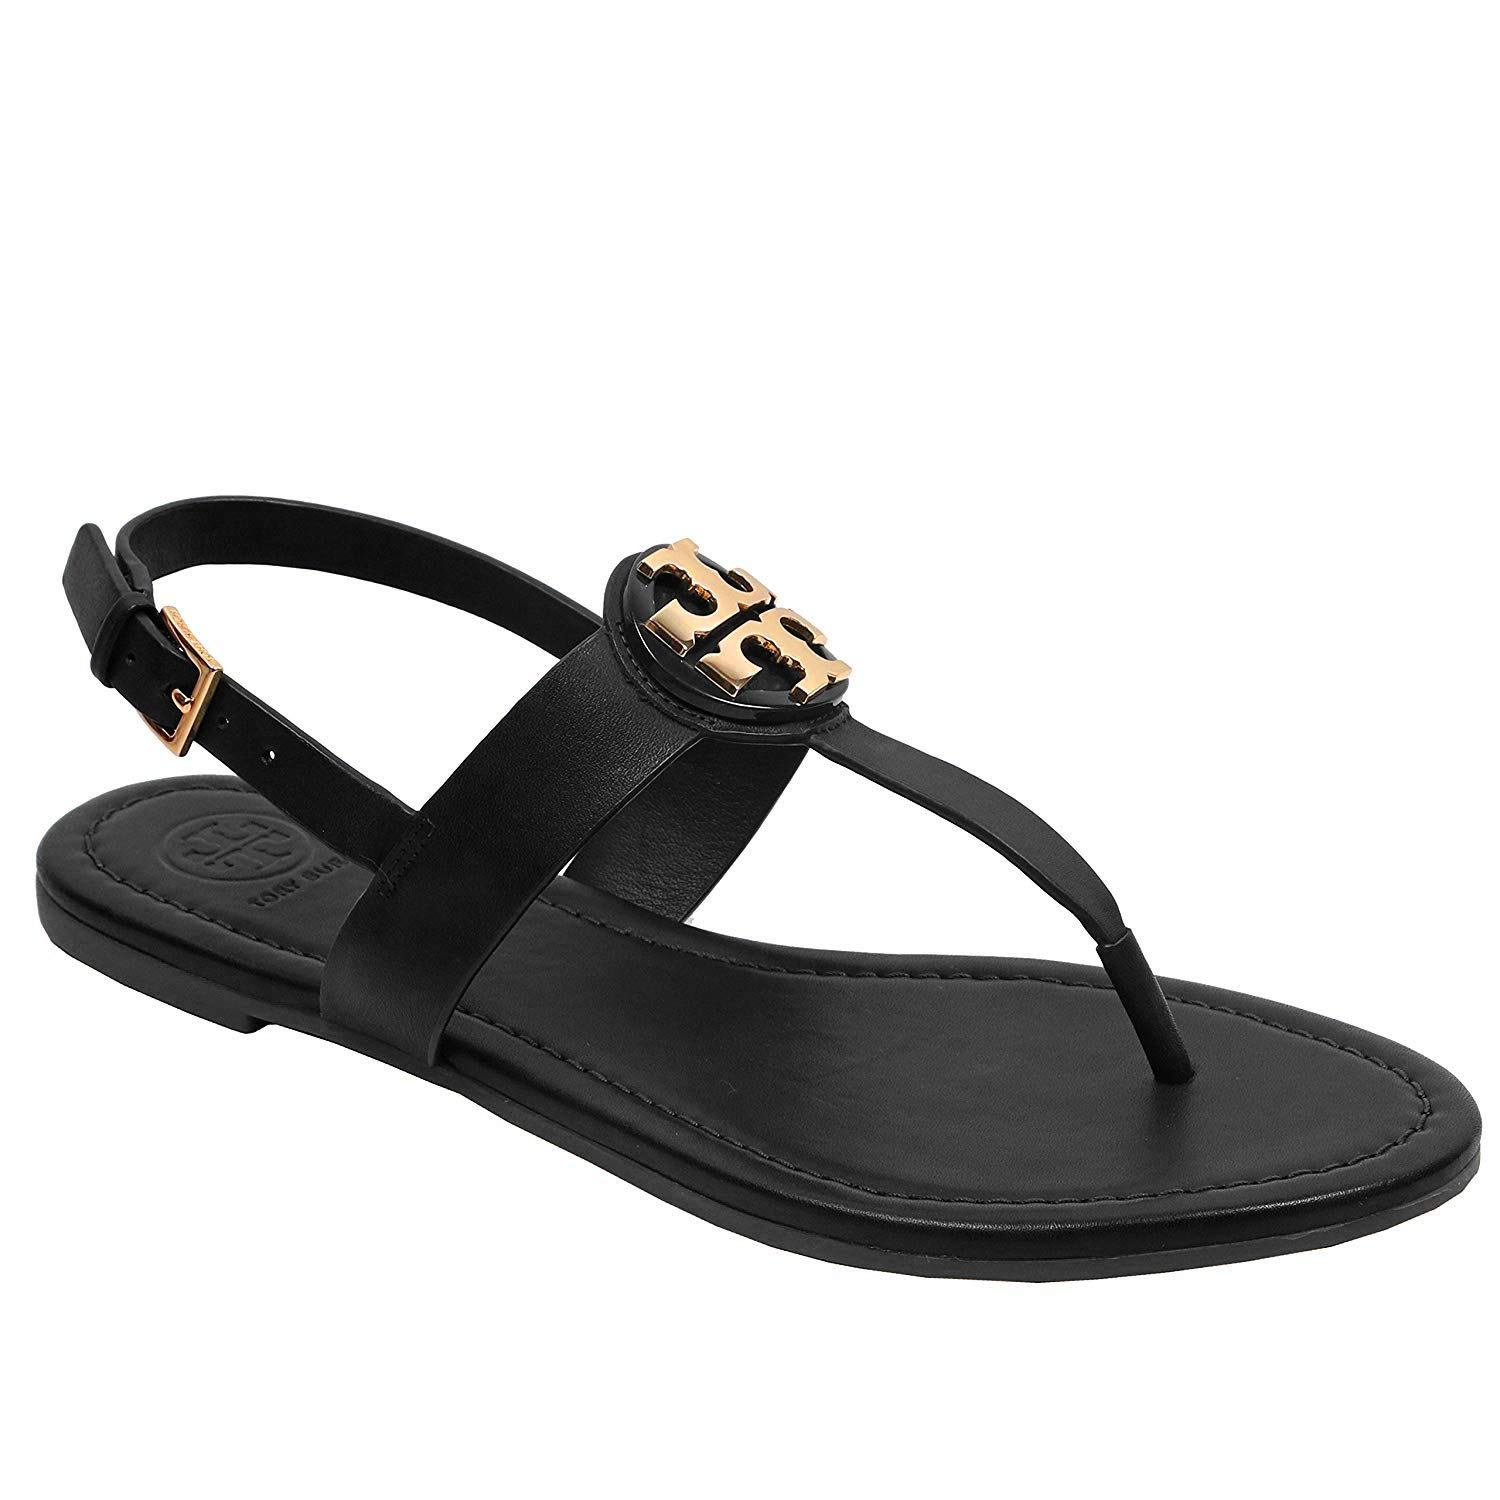 64a62e7aee9 Tory Burch Bryce Flat Thong Sandal Veg Leather  Amazon.ca  Shoes   Handbags